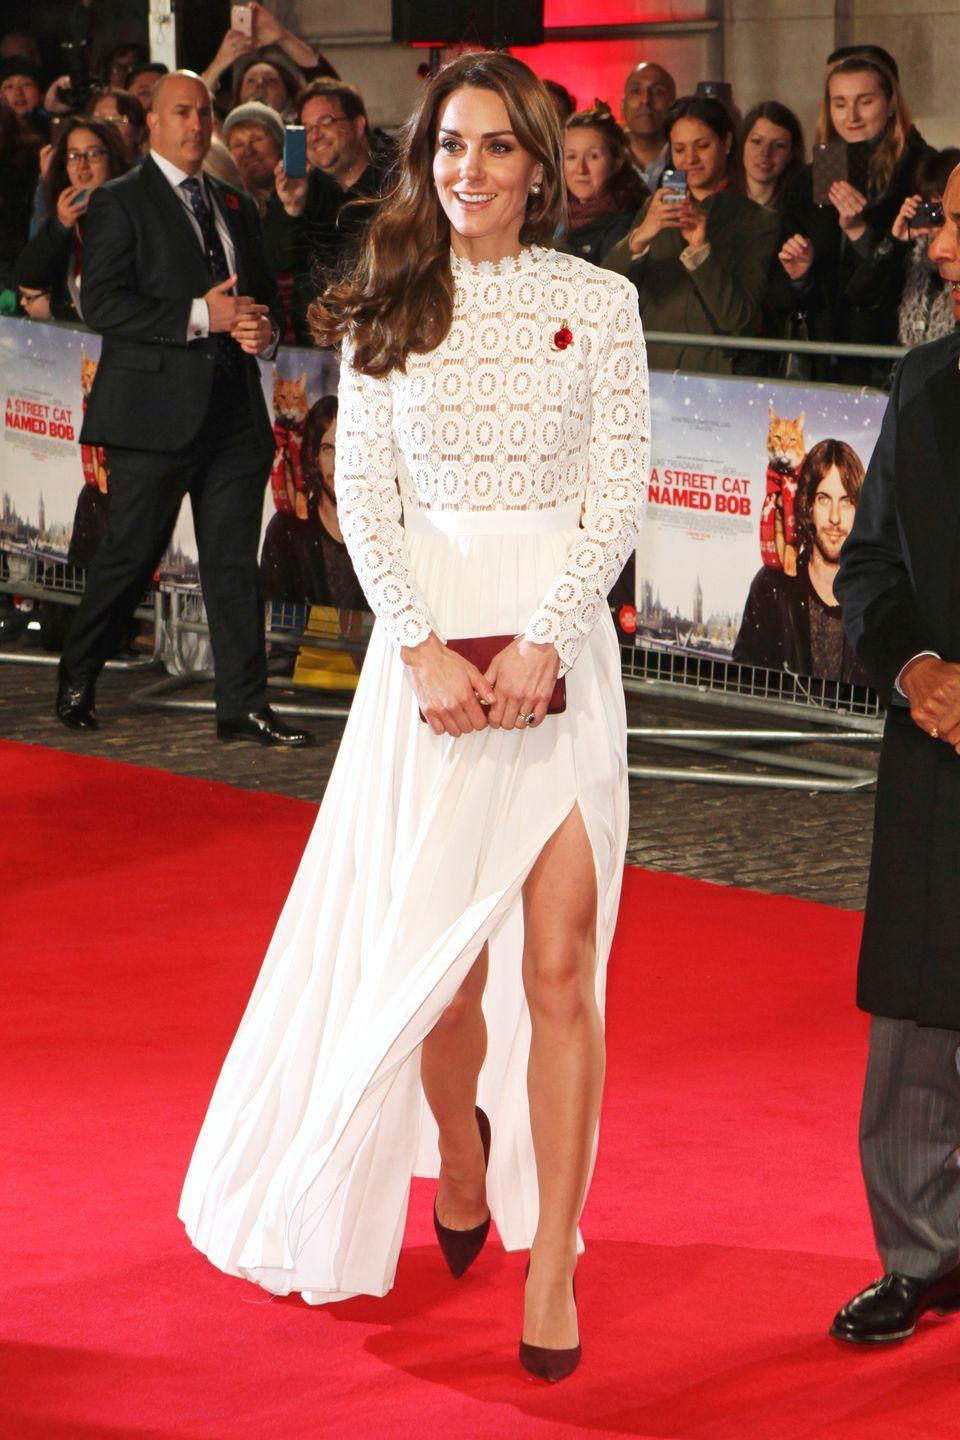 <p>In a white lace dress with a thigh-high slit by Self Portrait, suede oxblood pumps and a matching clutch at the premiere of <em>A Street Cat Named Bob</em> in London.</p>